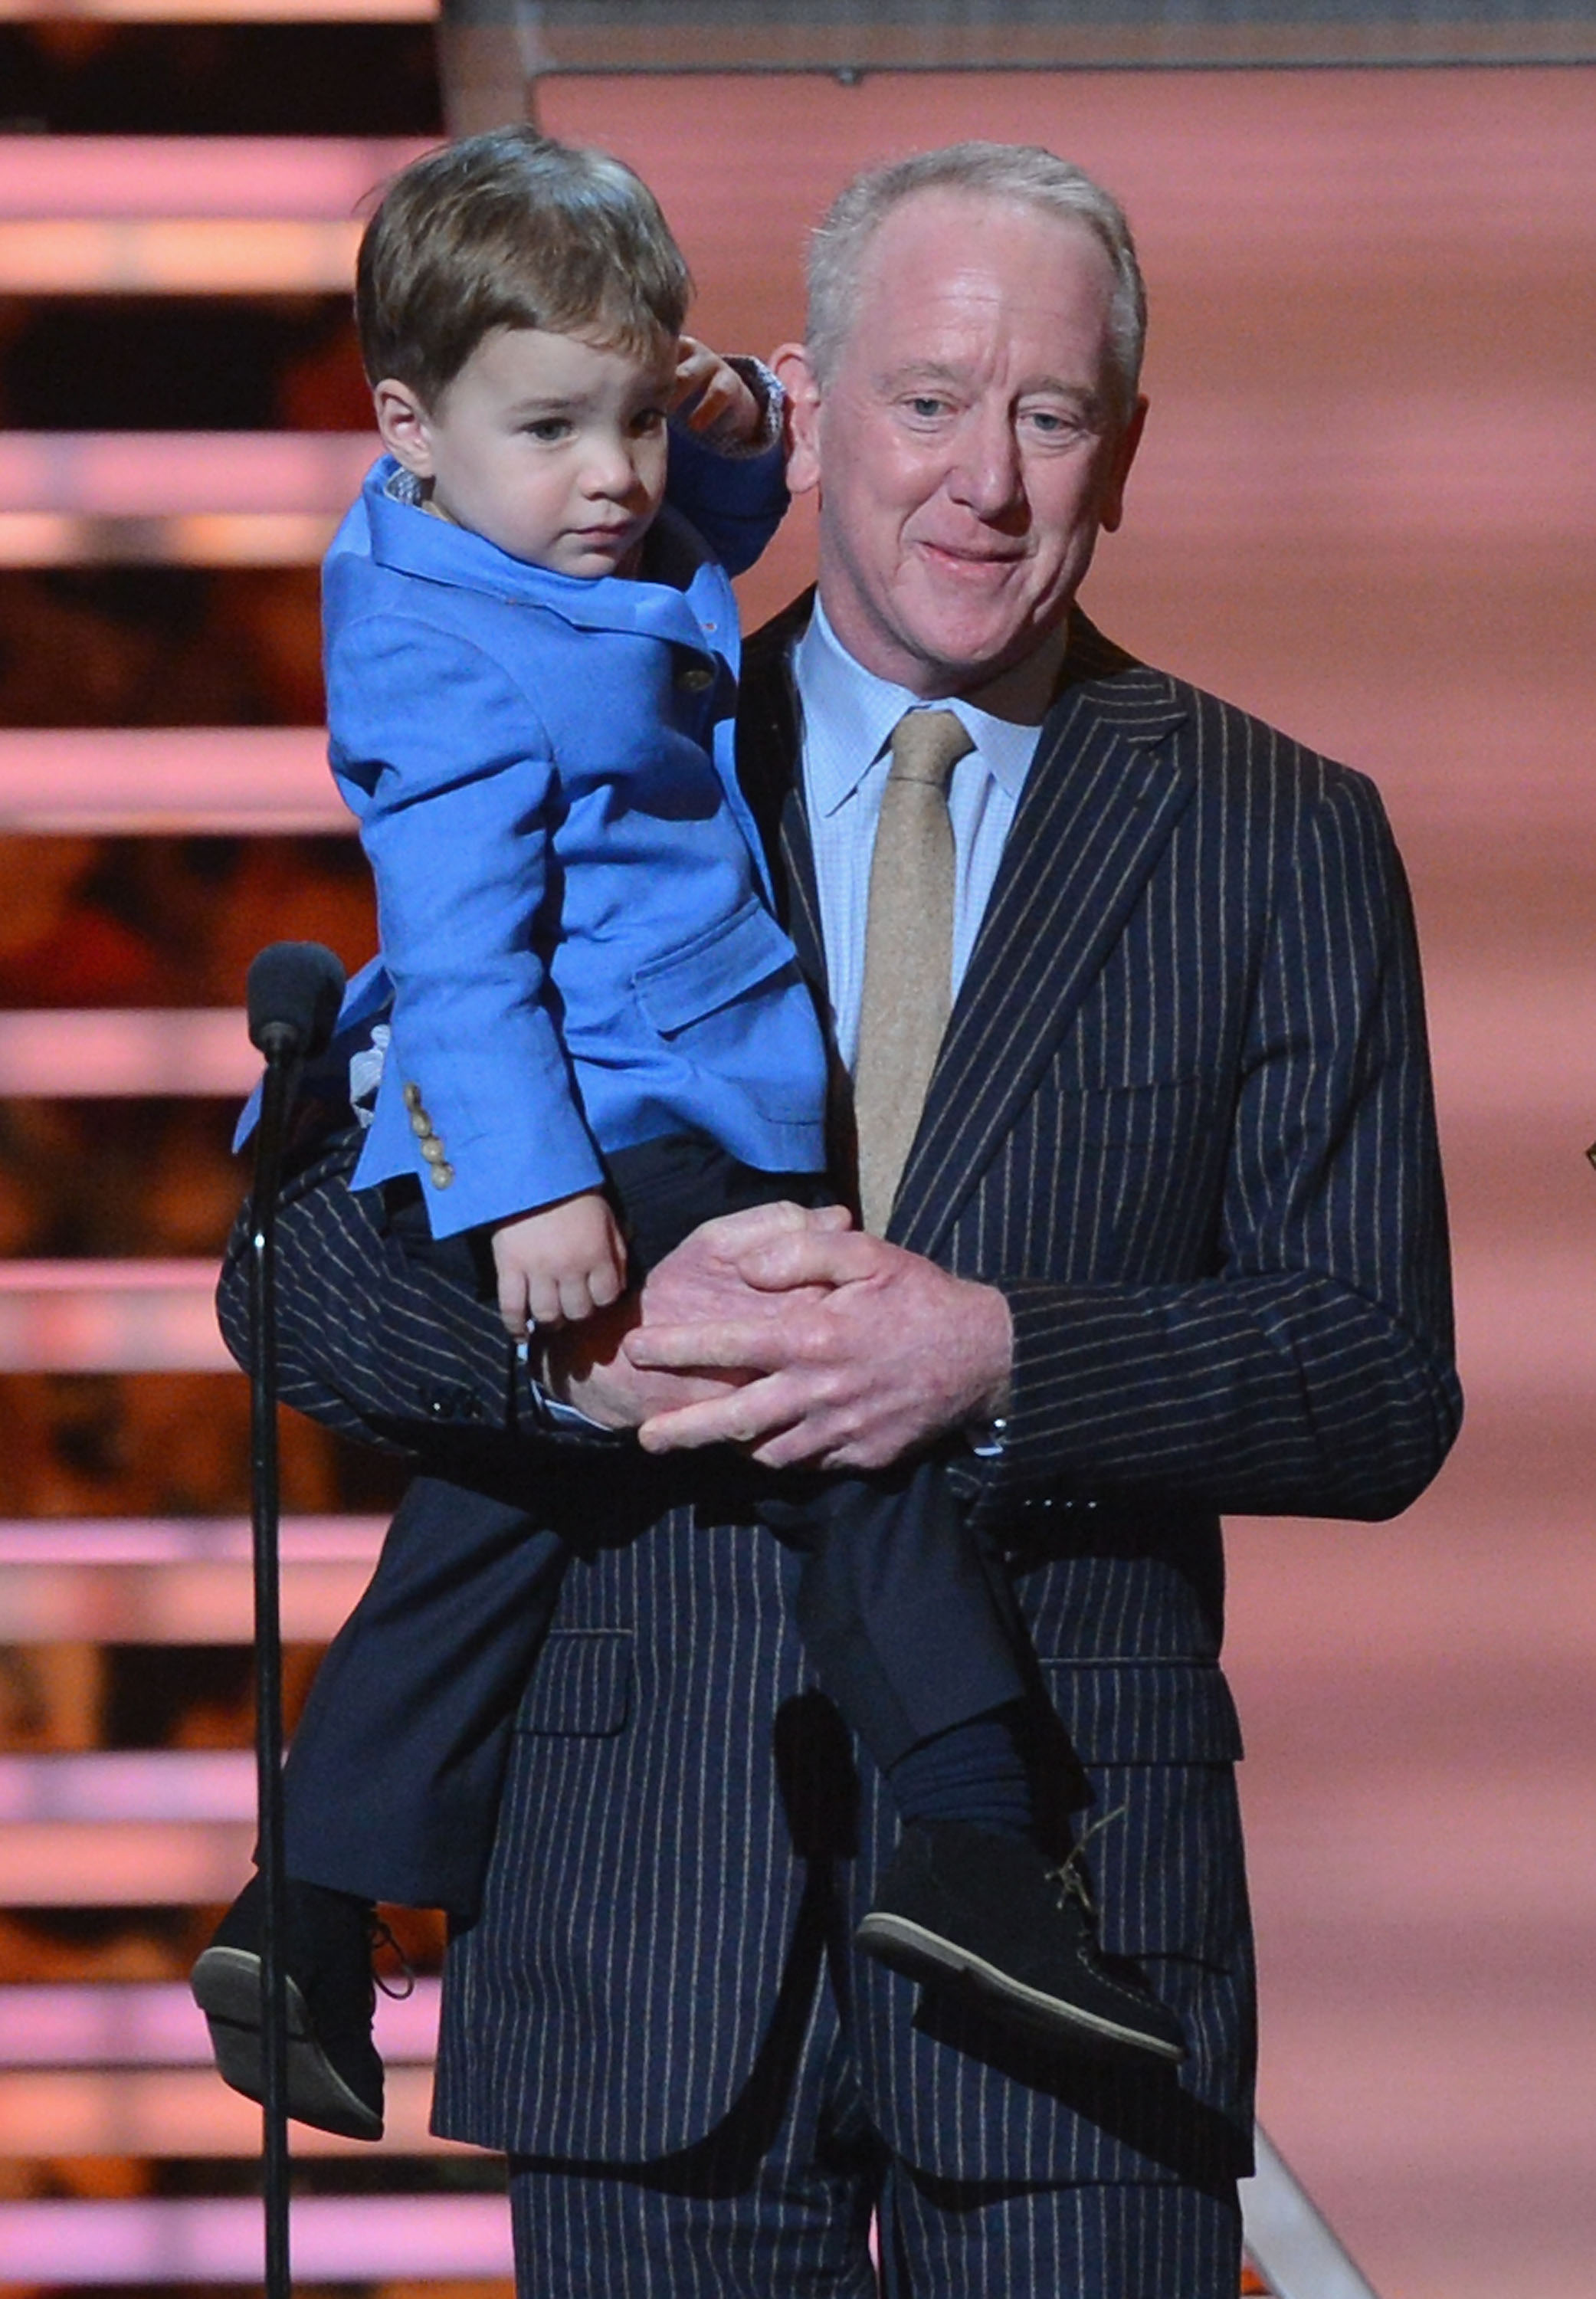 Peyton Manning's son Marshall and father Archie collect on his behalf the NFL MVP award at the 3rd Annual NFL Honors at Radio City Music Hall on February 1, 2014 in New York City. (Photo by Slaven Vlasic/Getty Images)